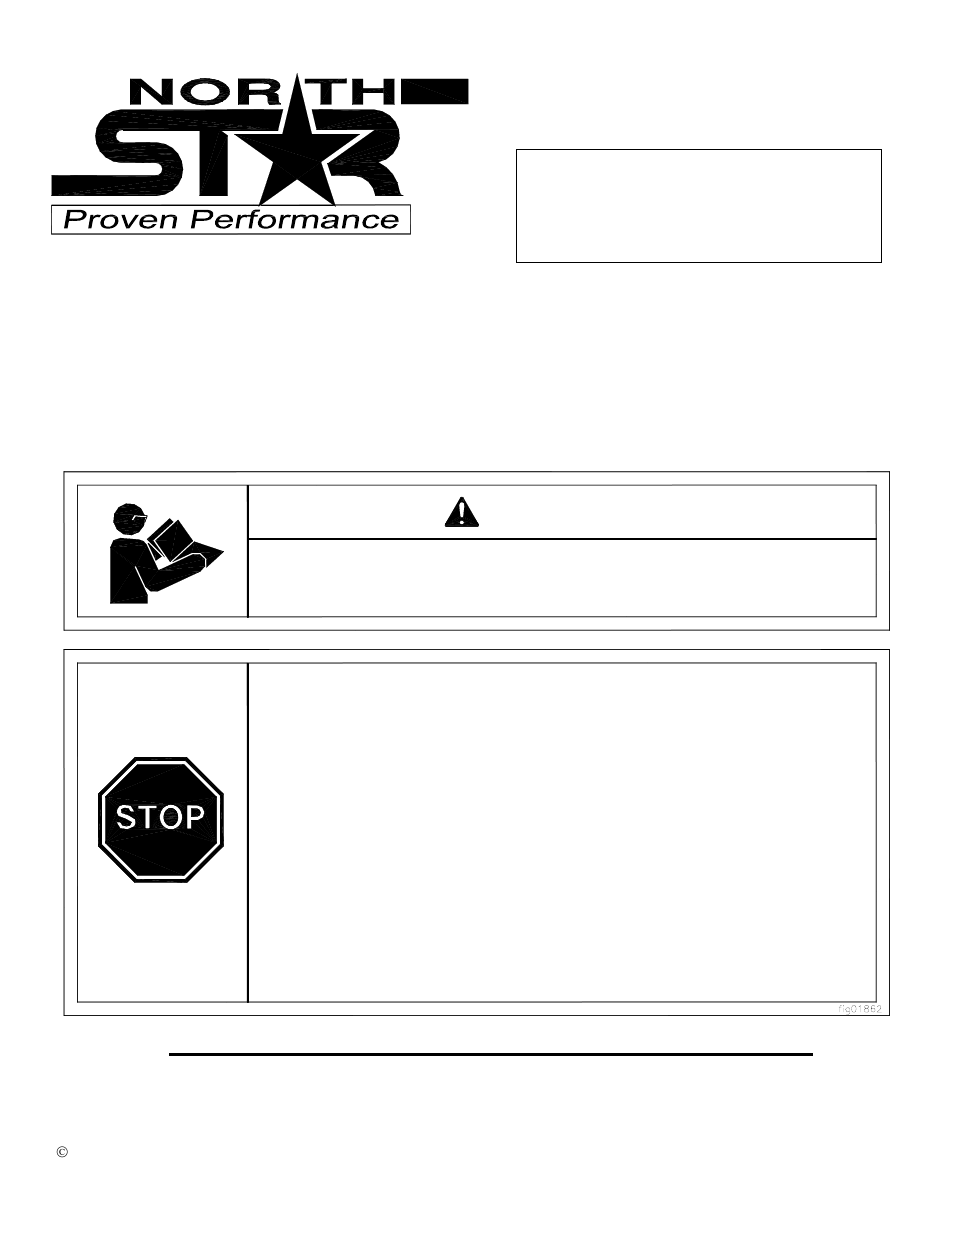 North Star Proven Performance M1578112g User Manual